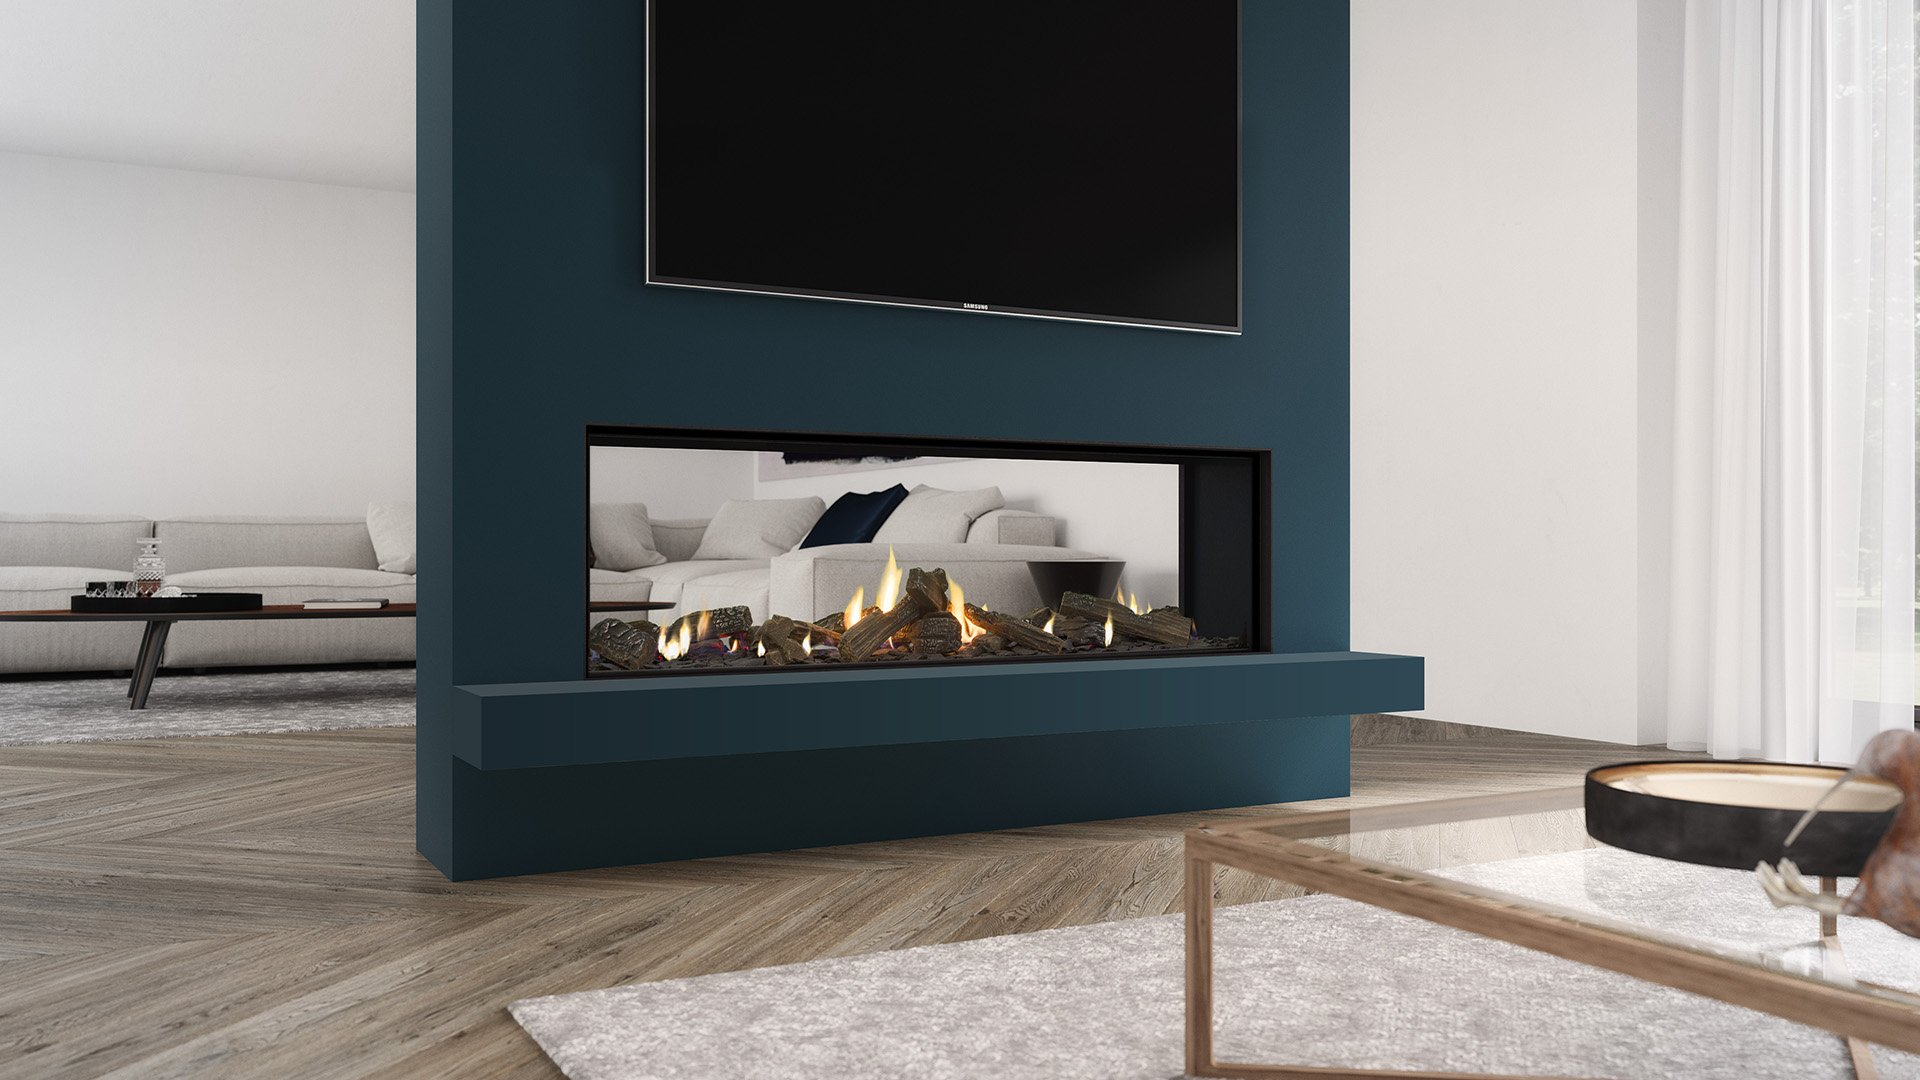 New product release: the DS1400 gas fireplace